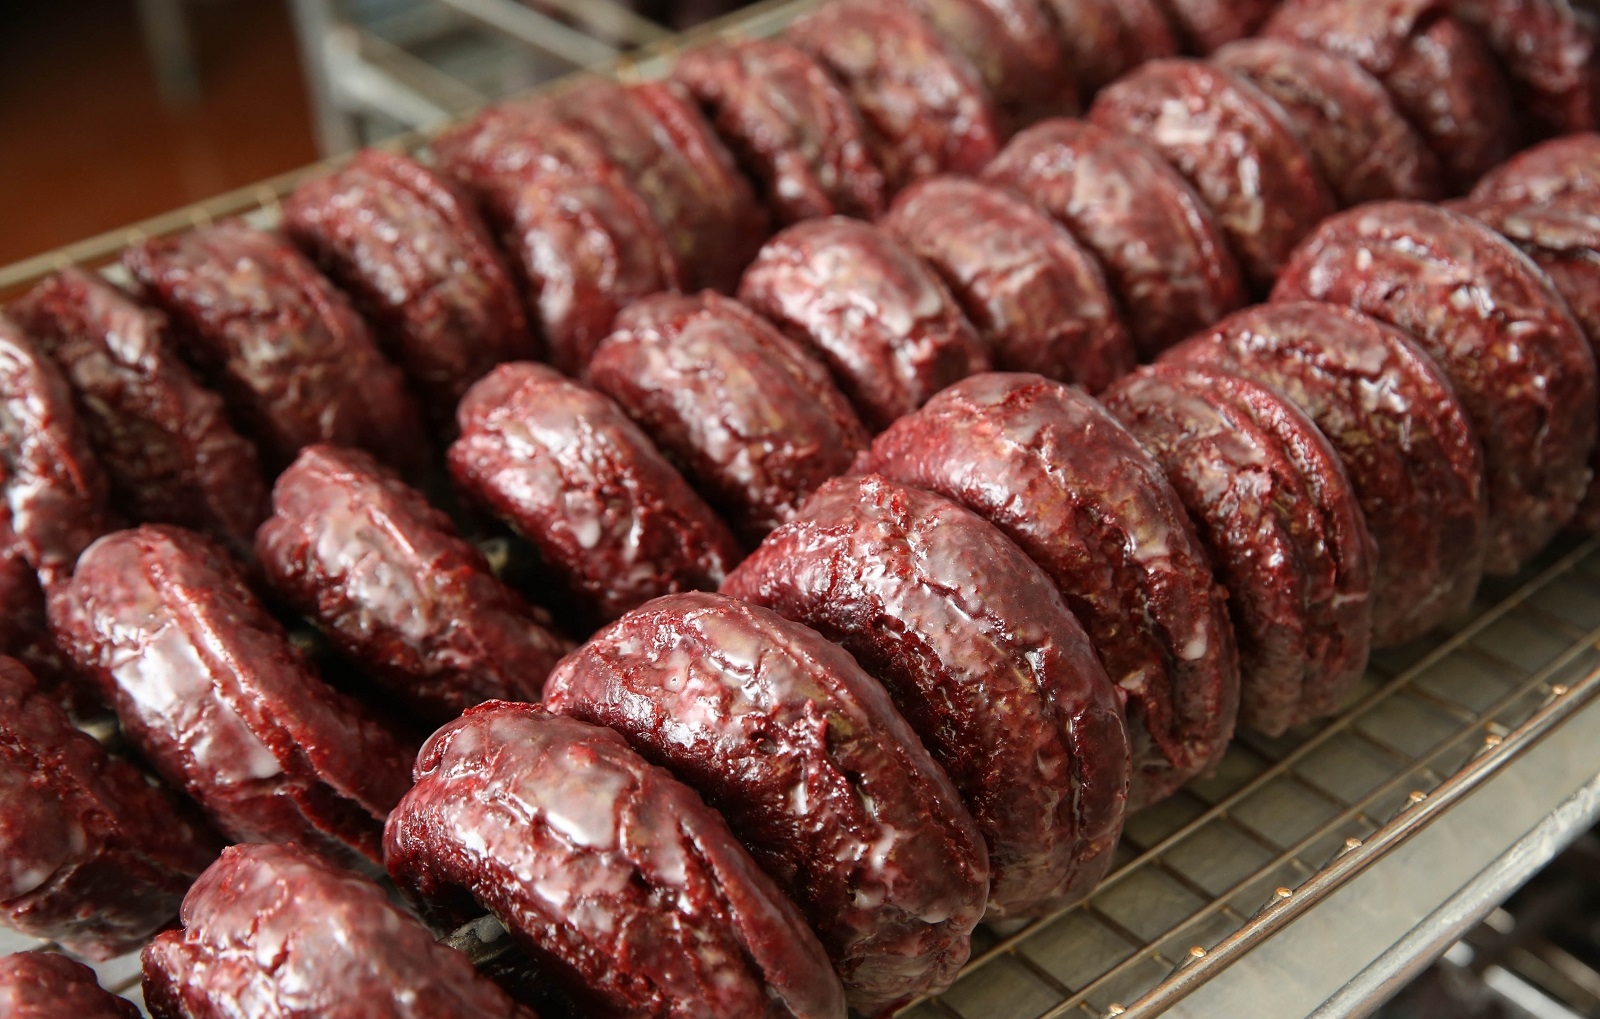 Paula's Donuts' red velvet doughnuts are very popular. (Sharon Cantillon/Buffalo News)